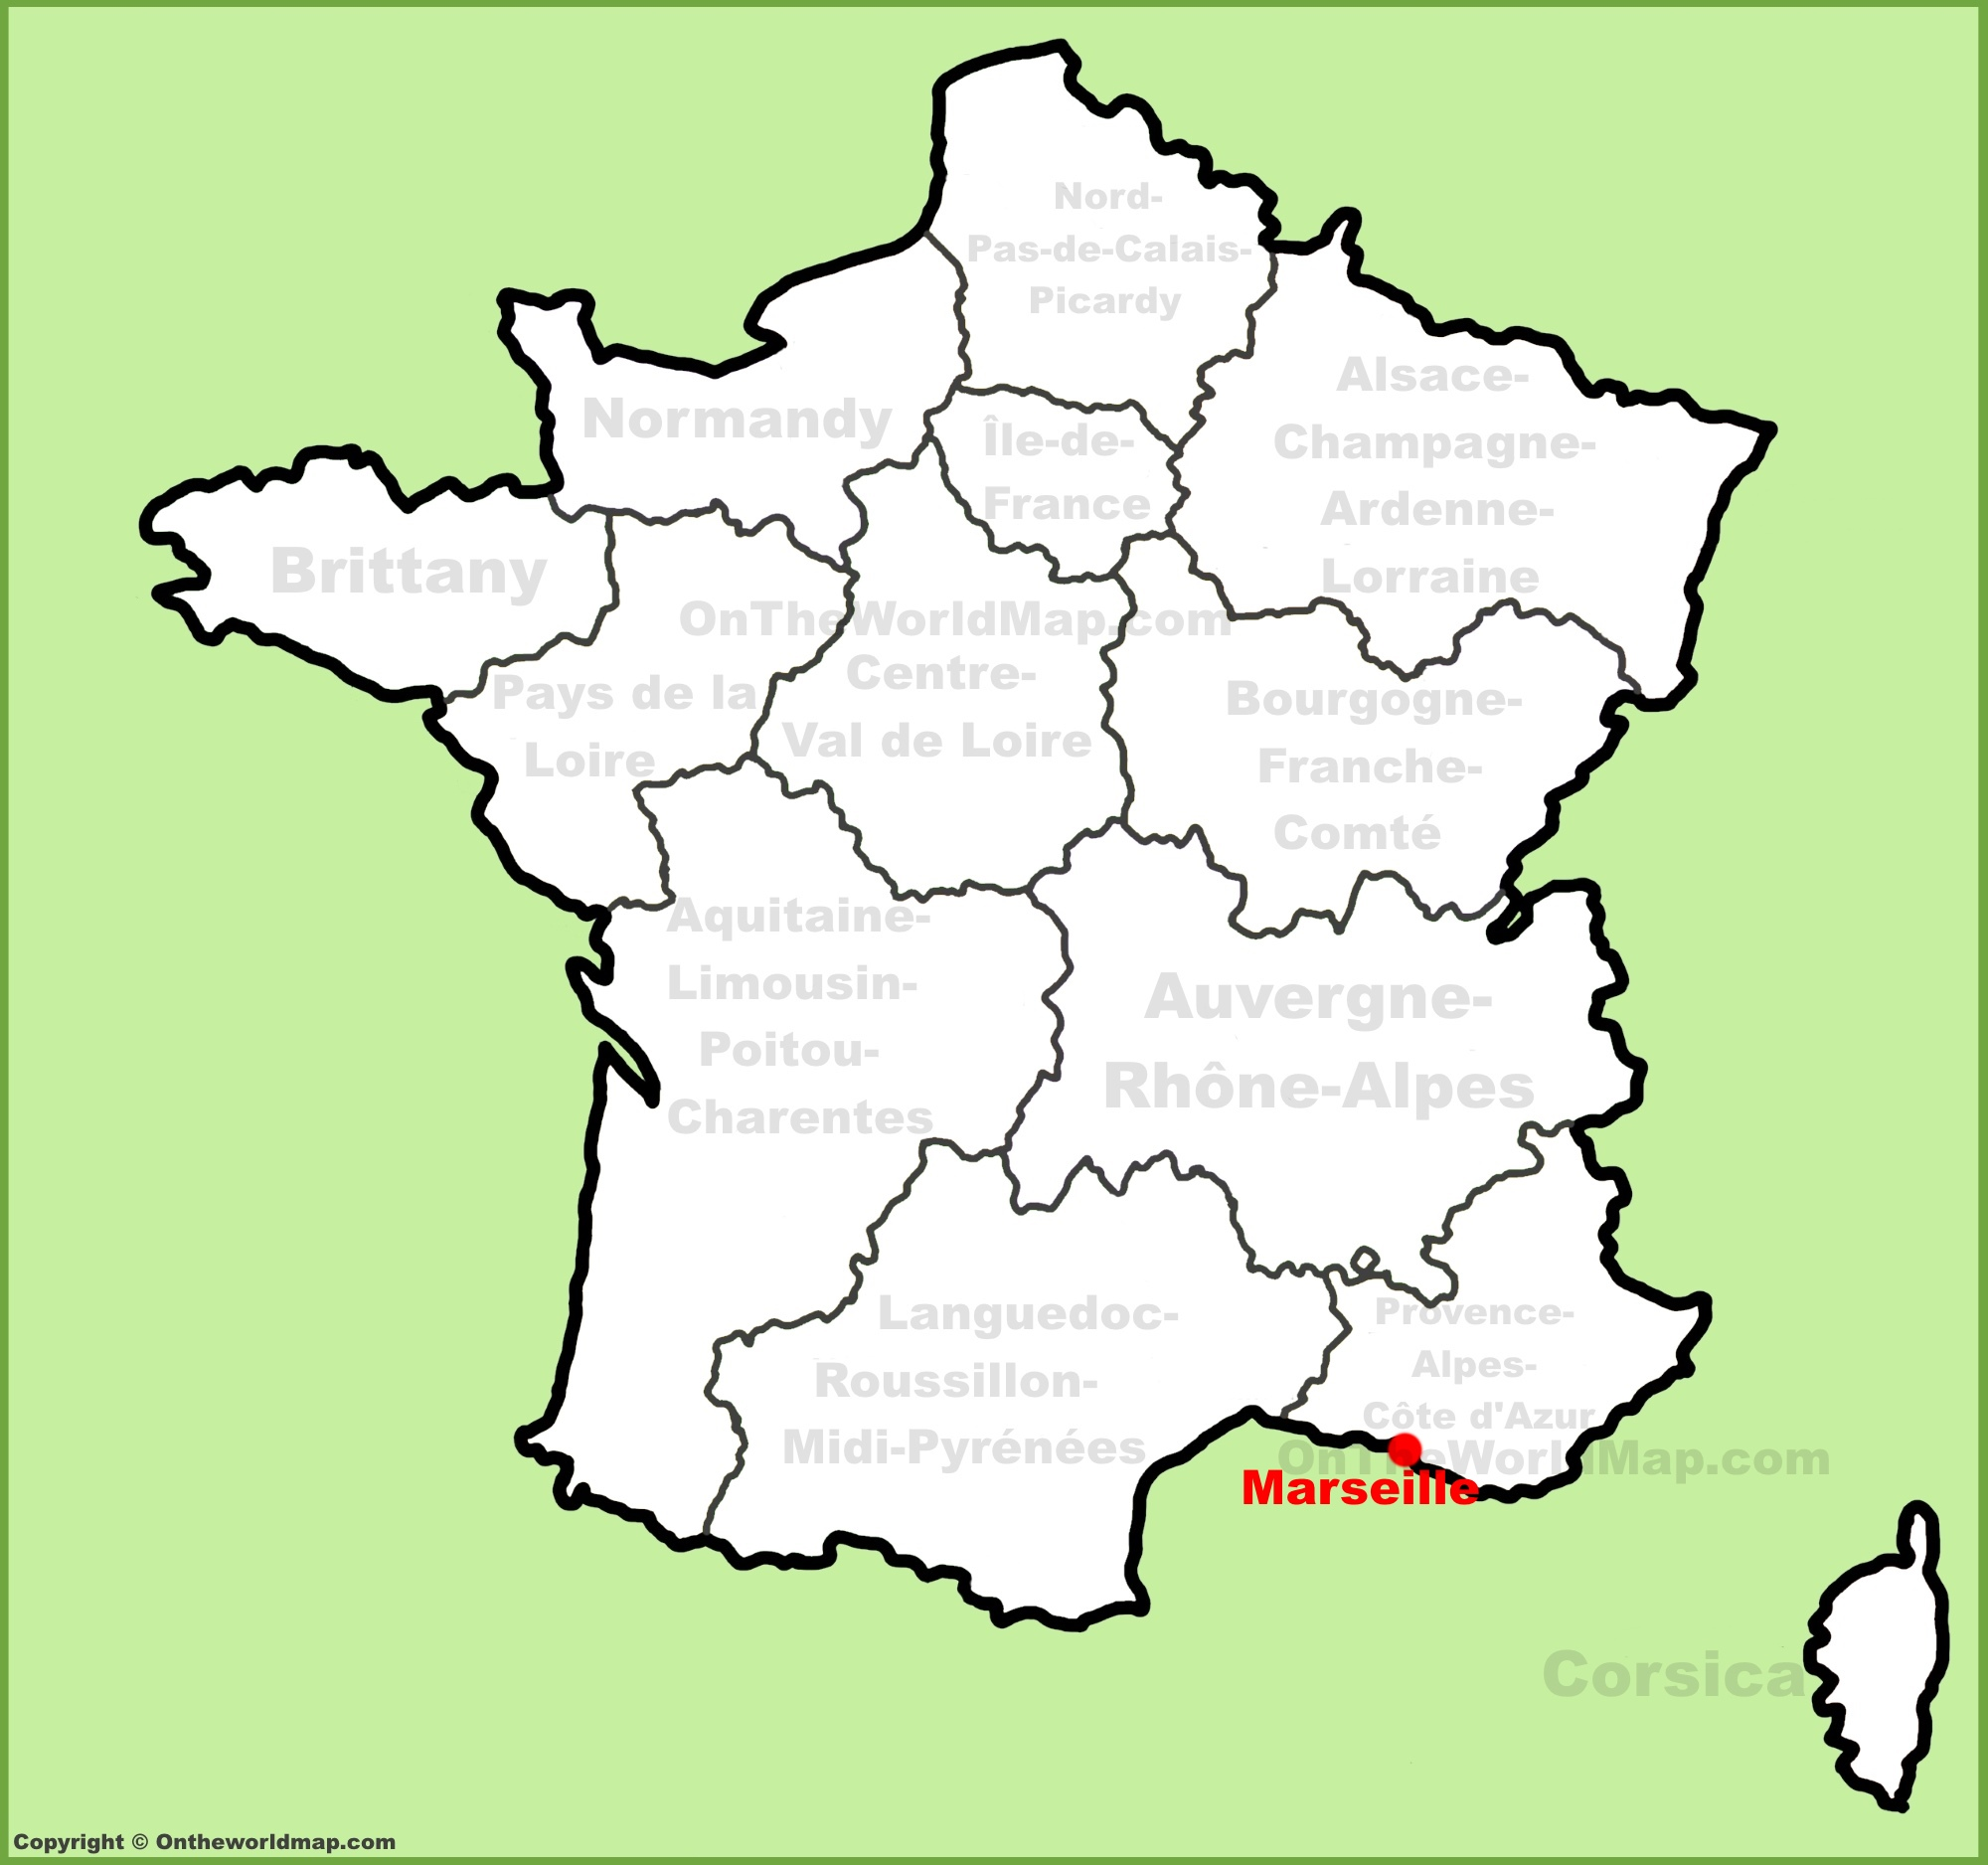 Map Of France Showing Marseille.Marseille Location On The France Map